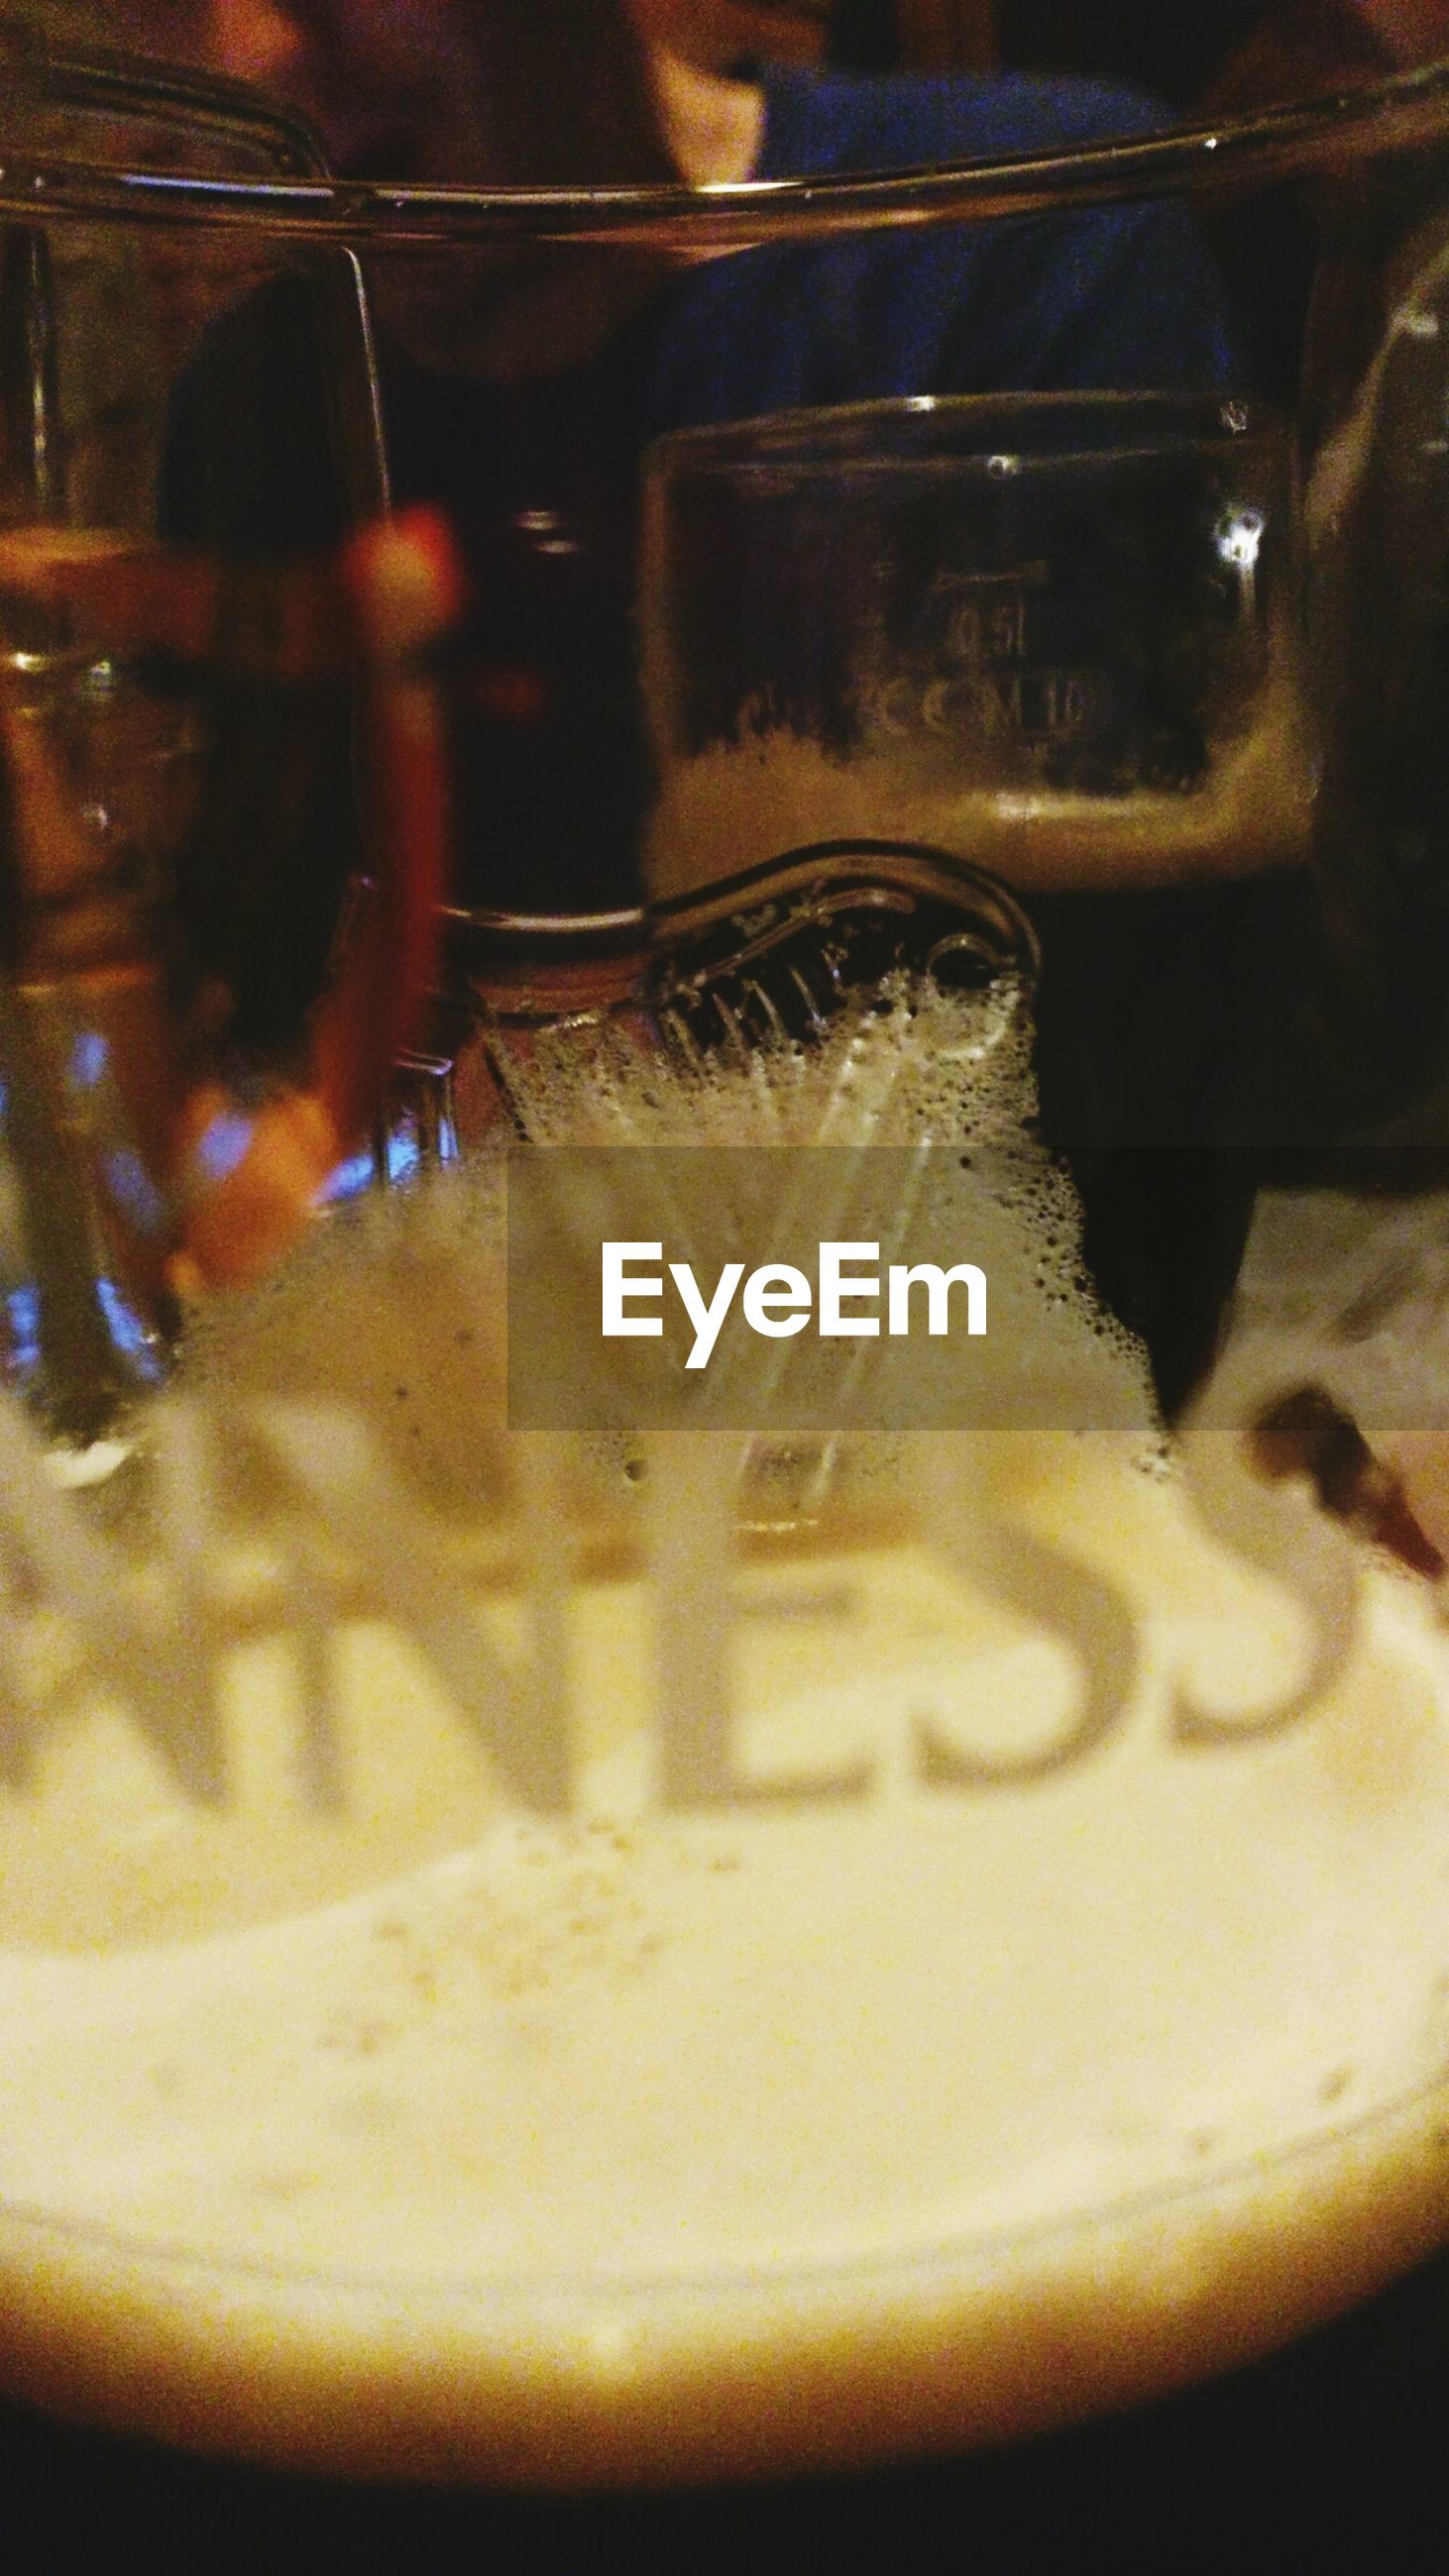 indoors, close-up, glass - material, reflection, still life, cold temperature, transparent, no people, drink, selective focus, night, food and drink, illuminated, table, focus on foreground, refreshment, old-fashioned, drinking glass, glass, motion